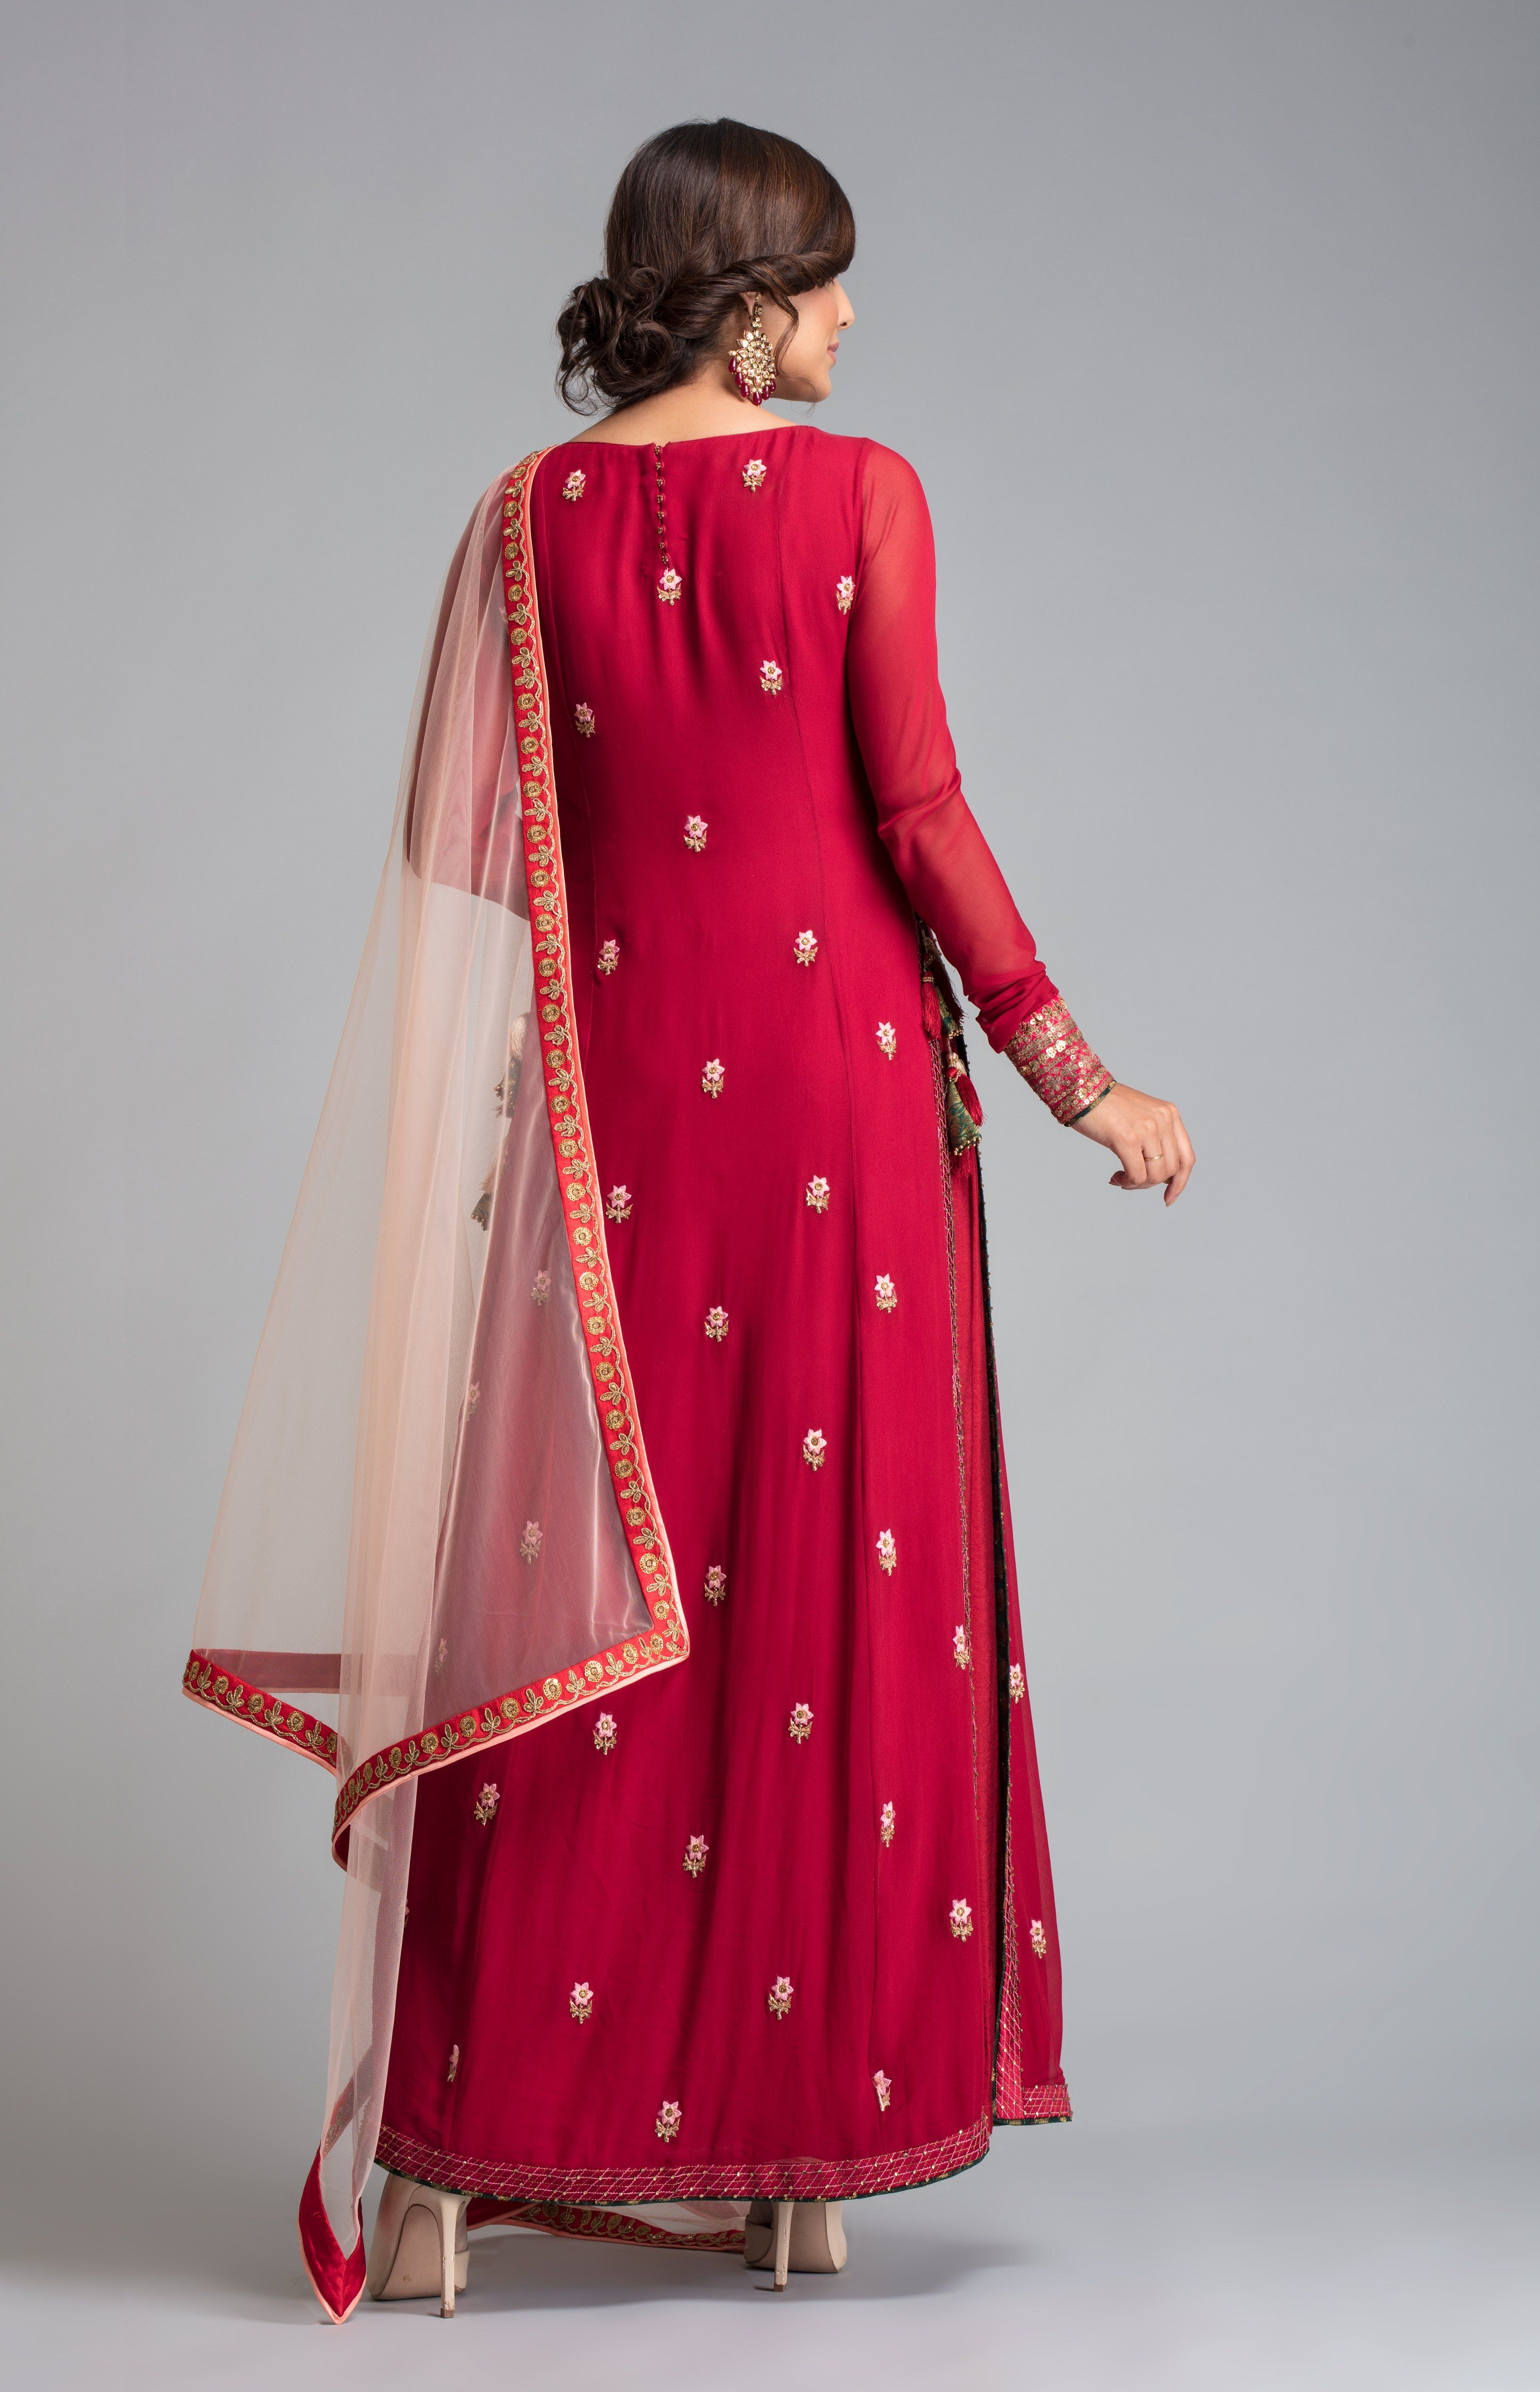 a16707a93d9 Burgundy High slit kurti with side pleated palazzo and contrast peach  dupatta. Fabric  Viscous GGT